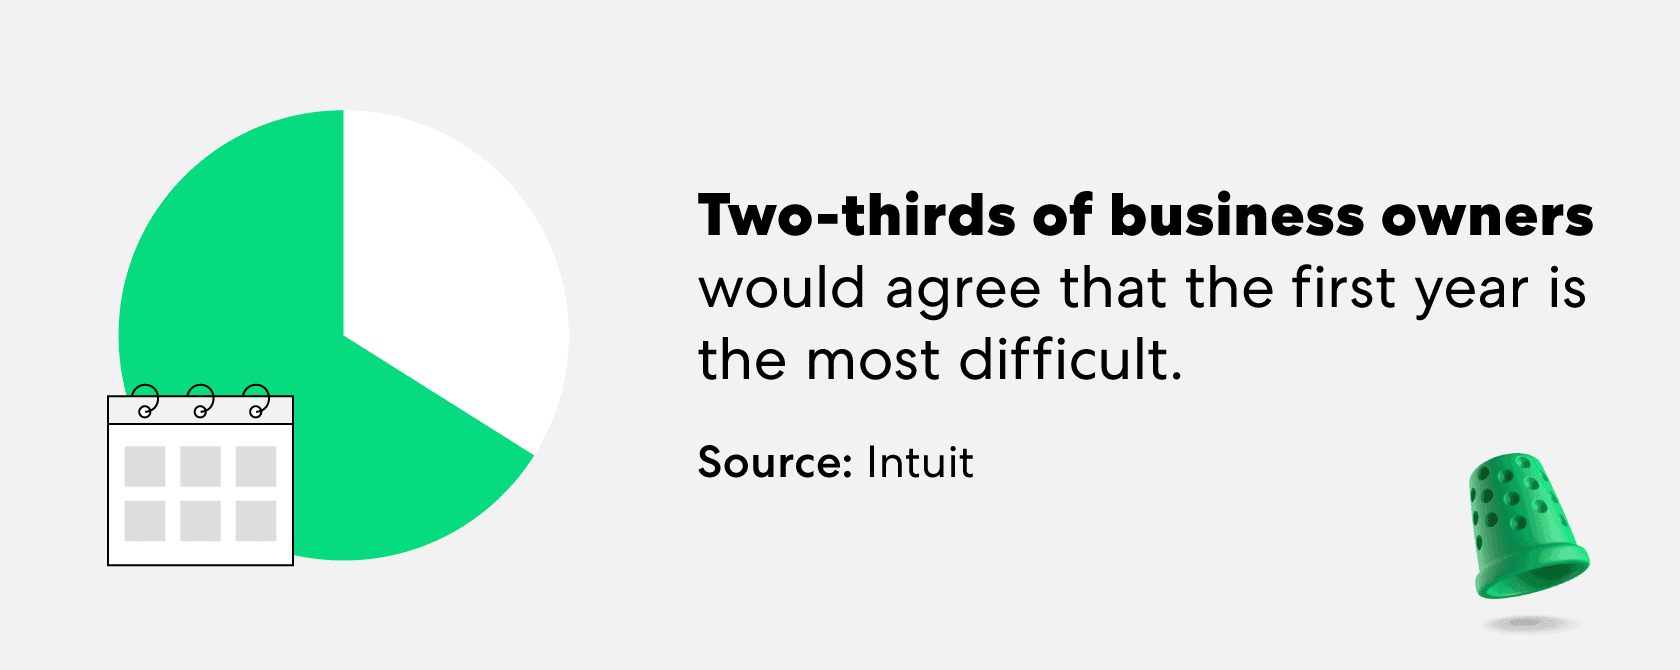 business-owners-agree-first-year-most-difficult